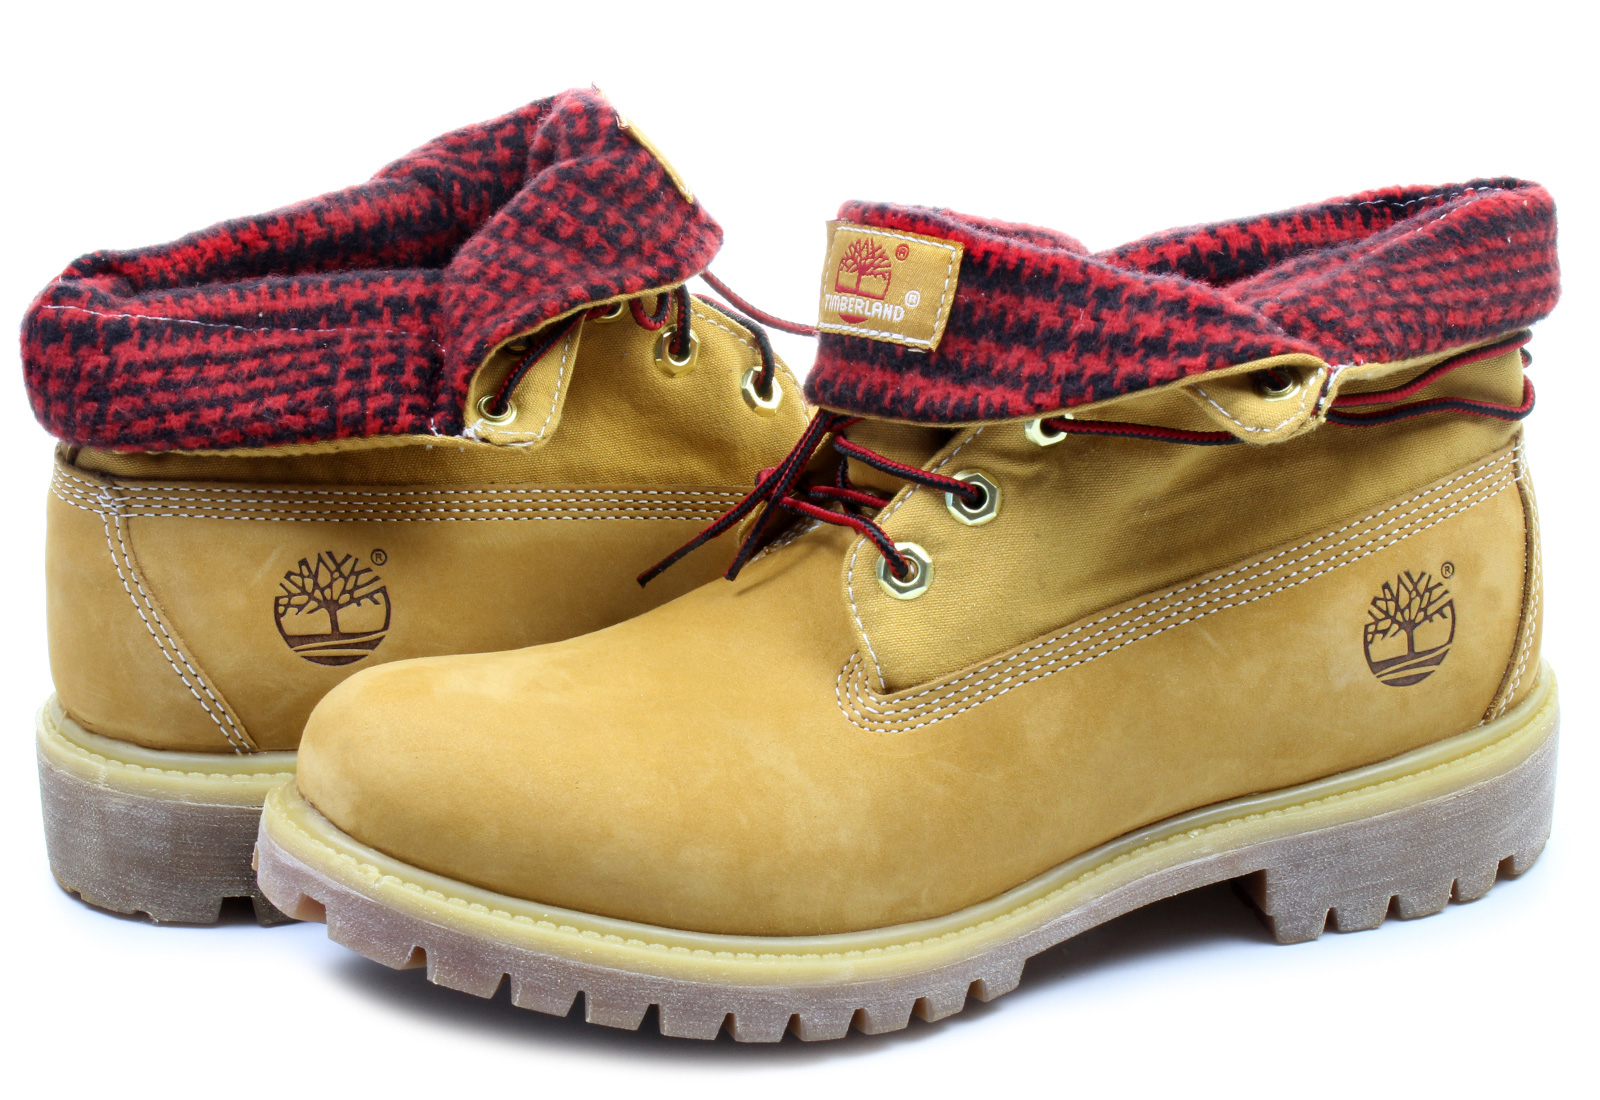 568b49a6cdf Timberland Boty - 6 In Roll-top - 6837A-WHETenisky